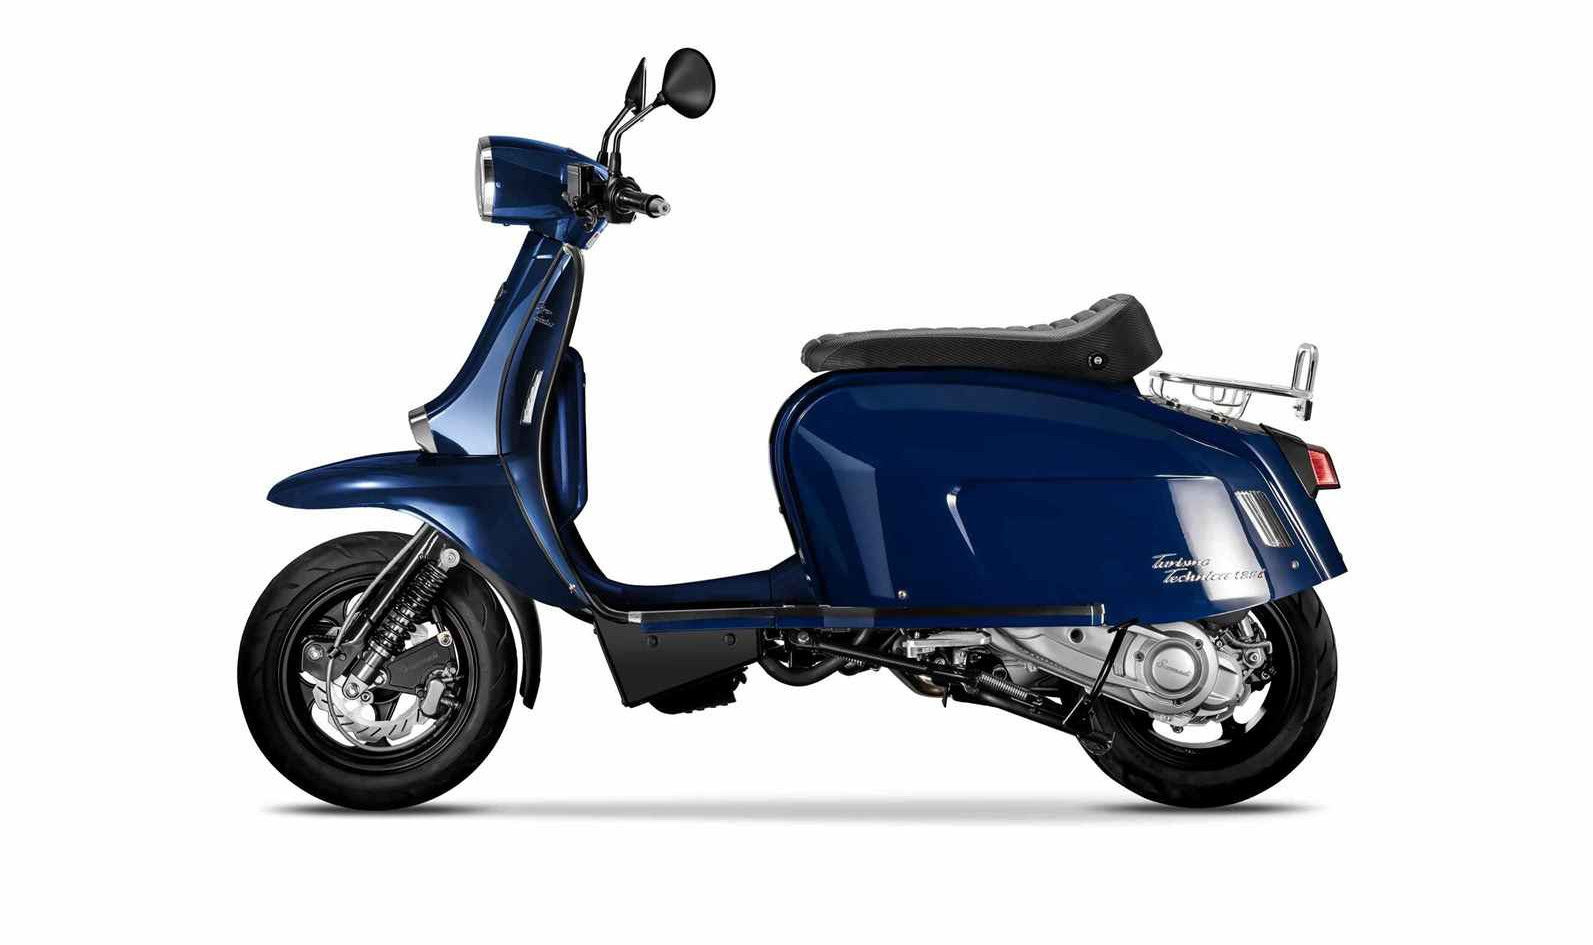 Scomadi_200cc_Jan2019_Side_Blue-1-1.jpg